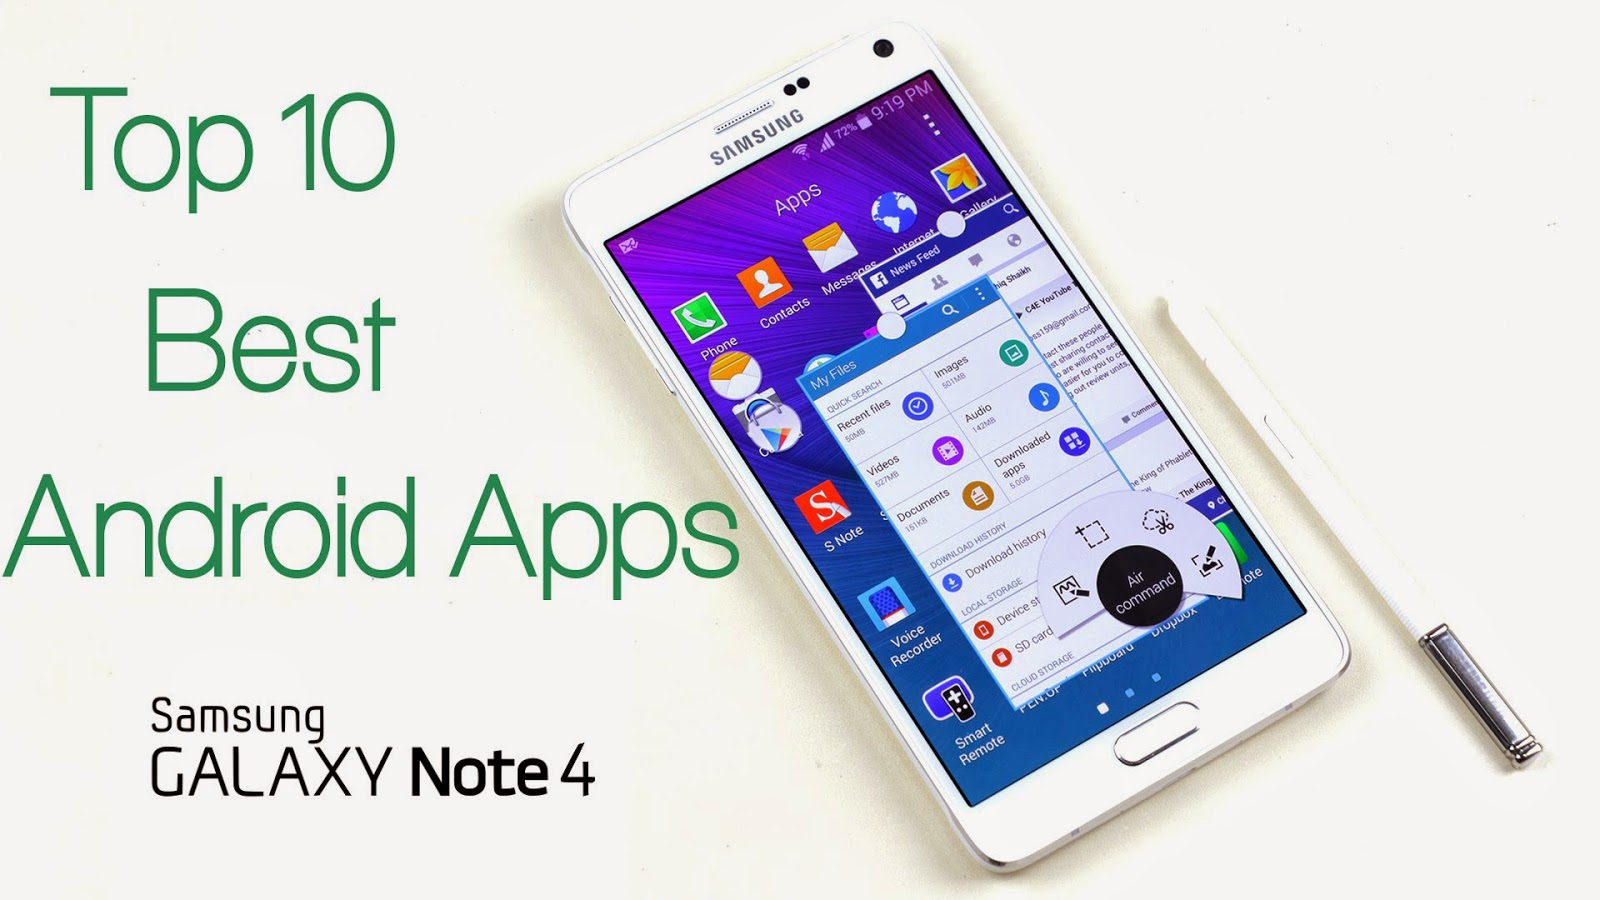 Top 10 Free Best Apps For Galaxy Note 4 Available On Google Play Store 2015